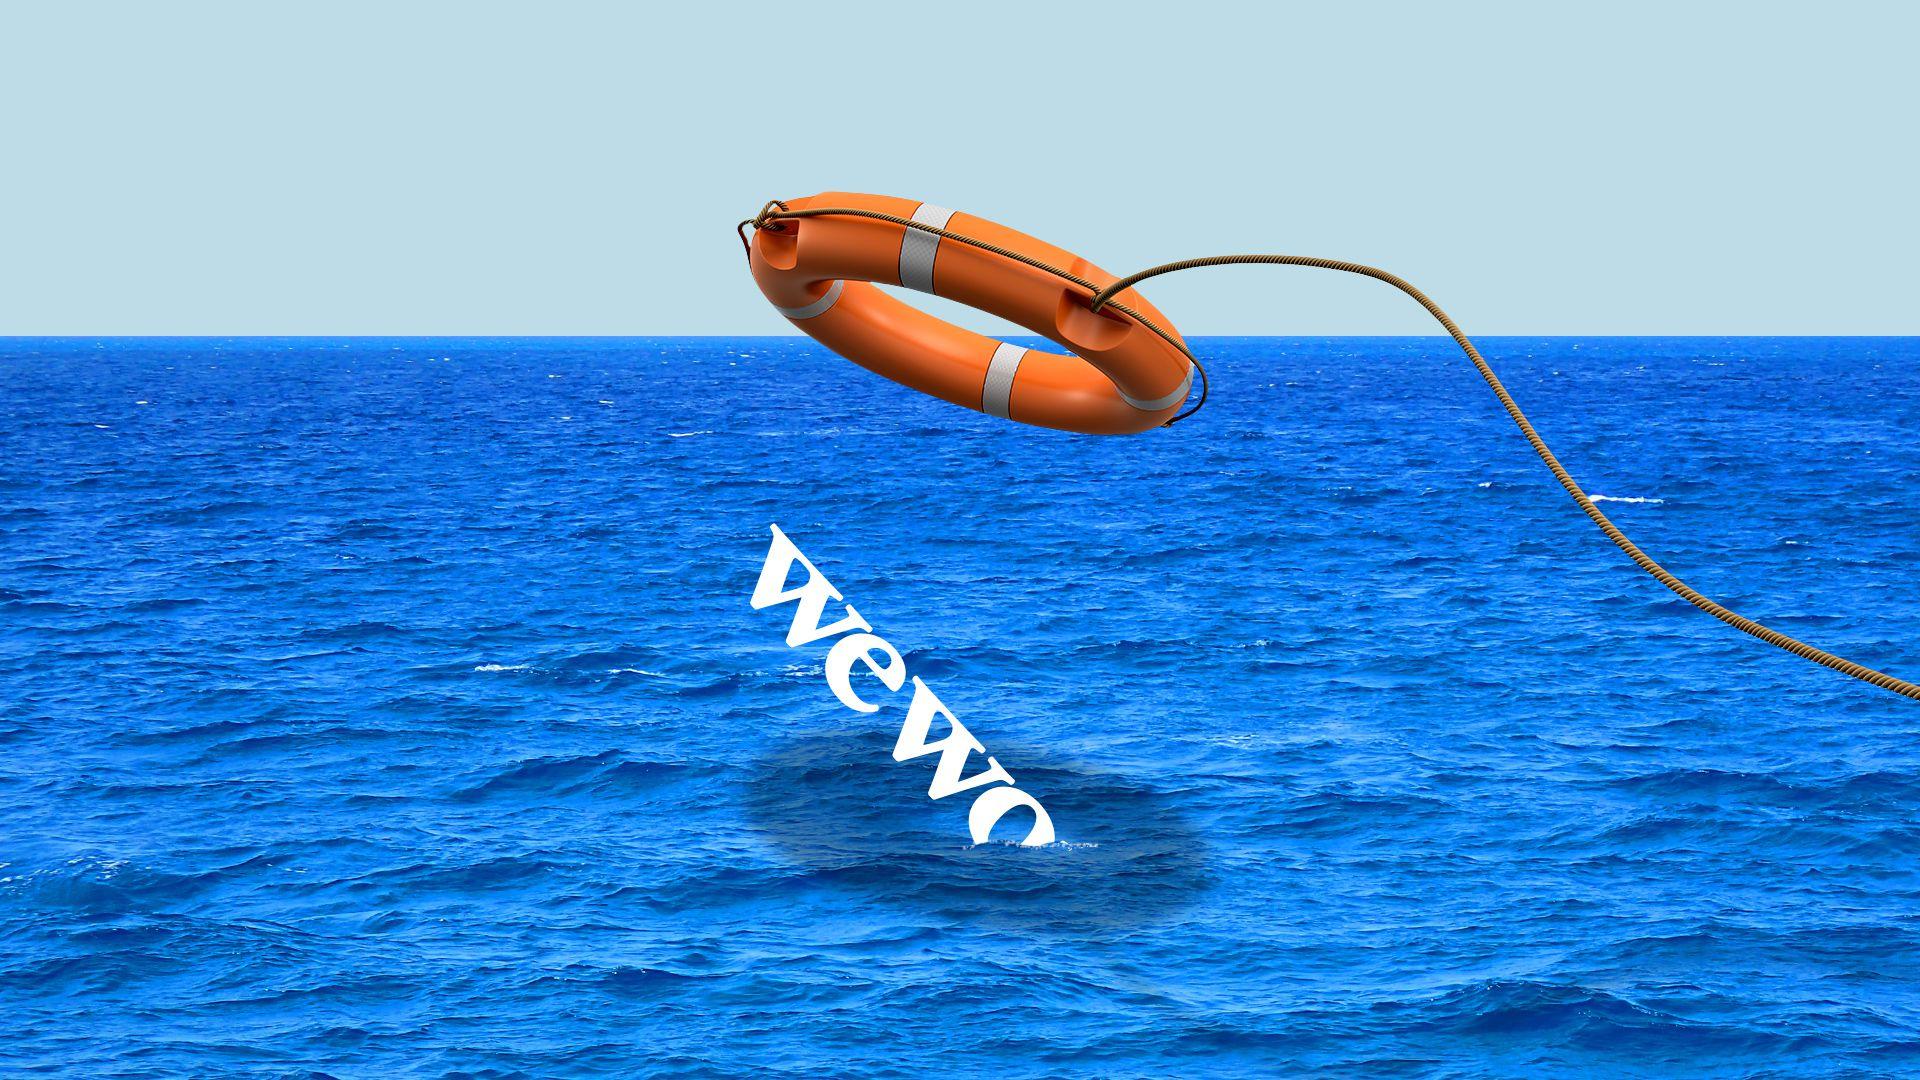 Illustration of the wework logo sinking with a ring buoy being thrown out over it.